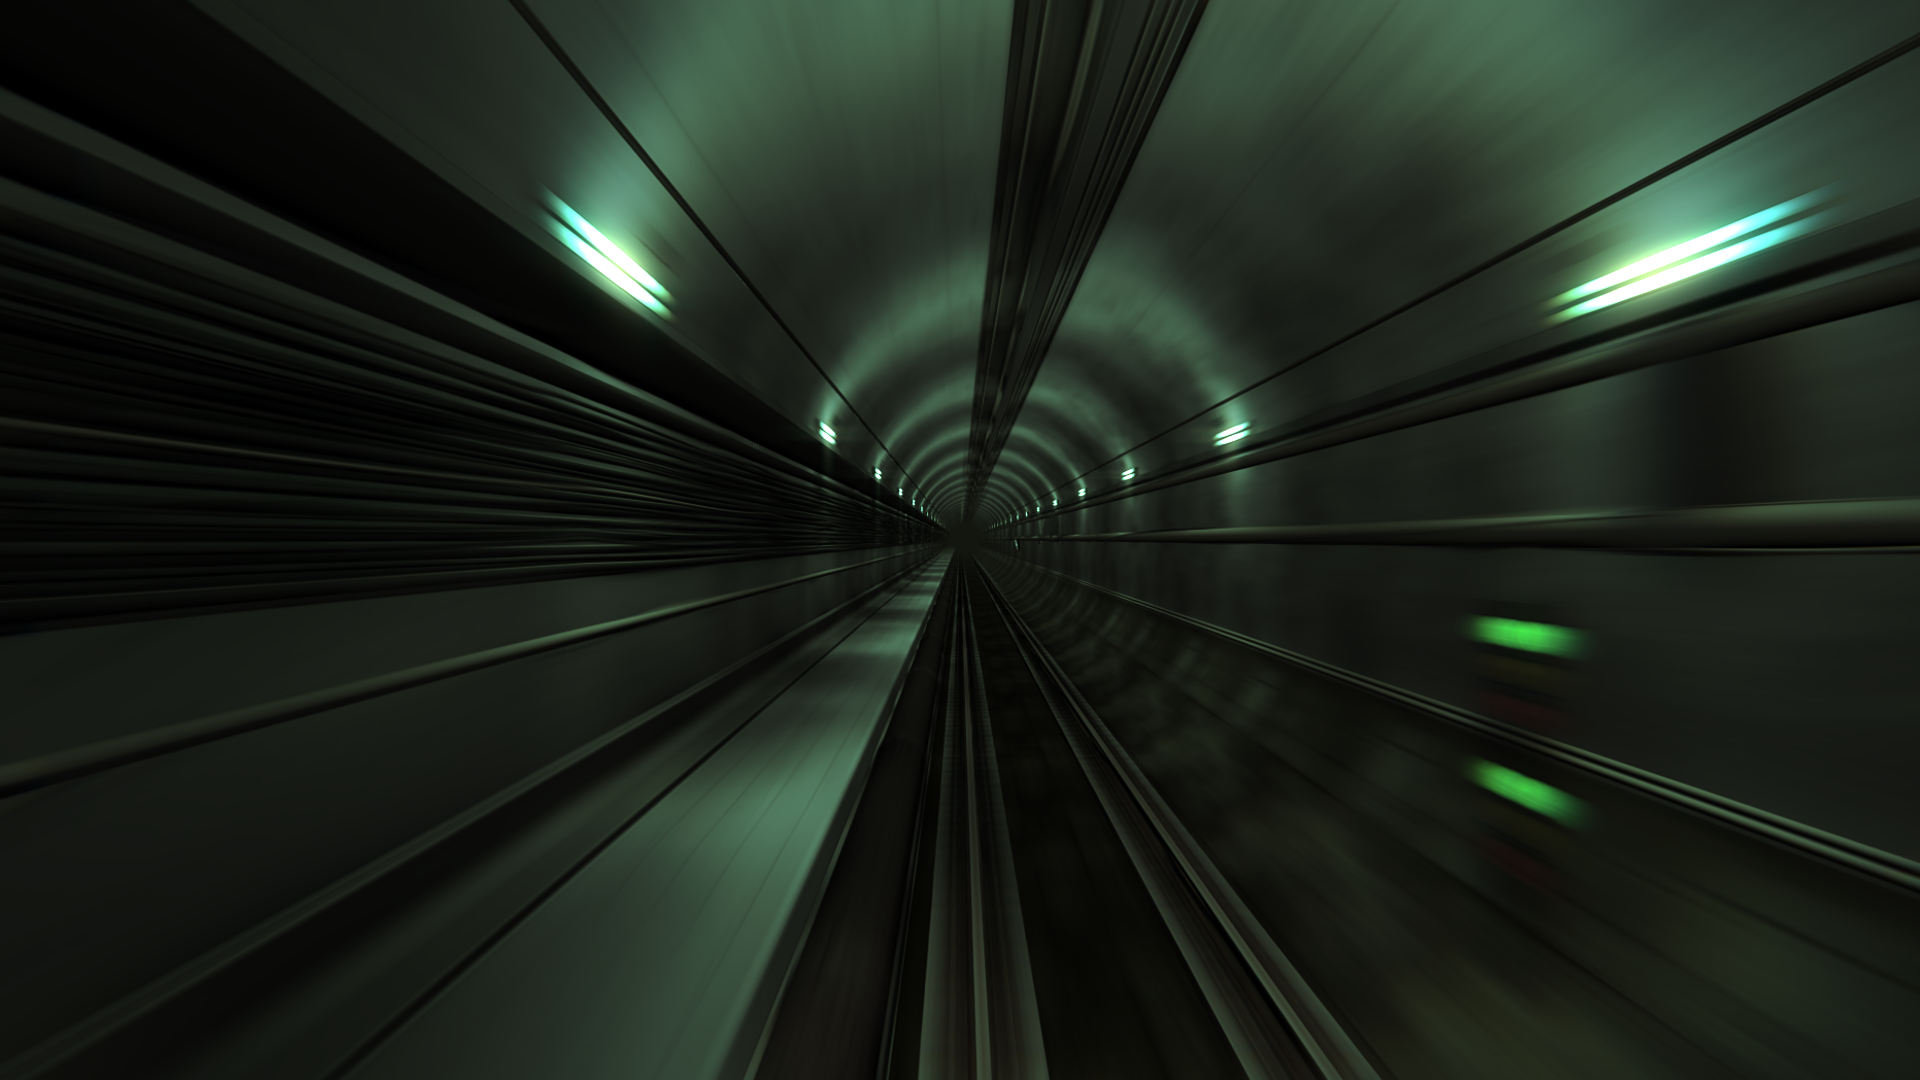 Tunnel Wallpapers in 100% Quality HD | 1920x1080, by Floria Mcgonagle